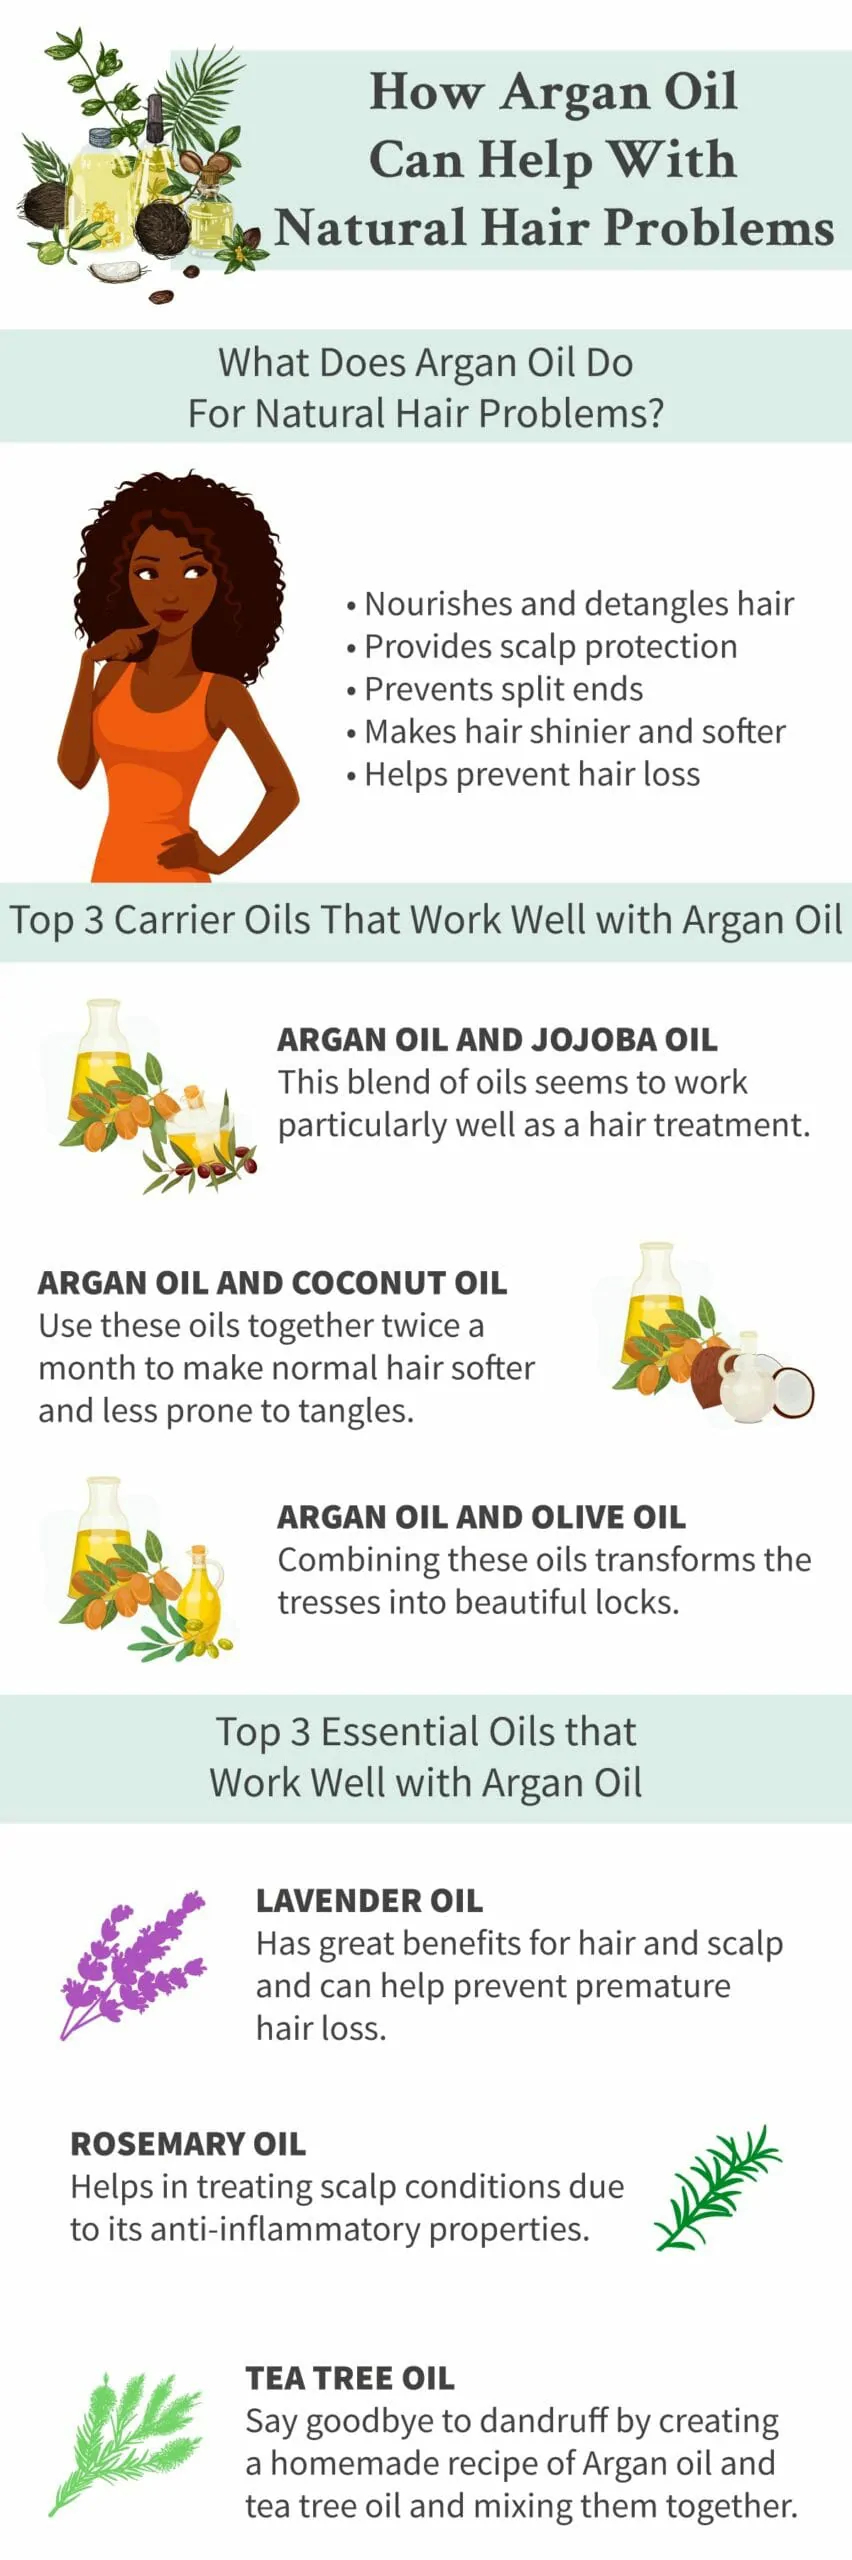 Argan Oil Solution for Natural Hair Problems